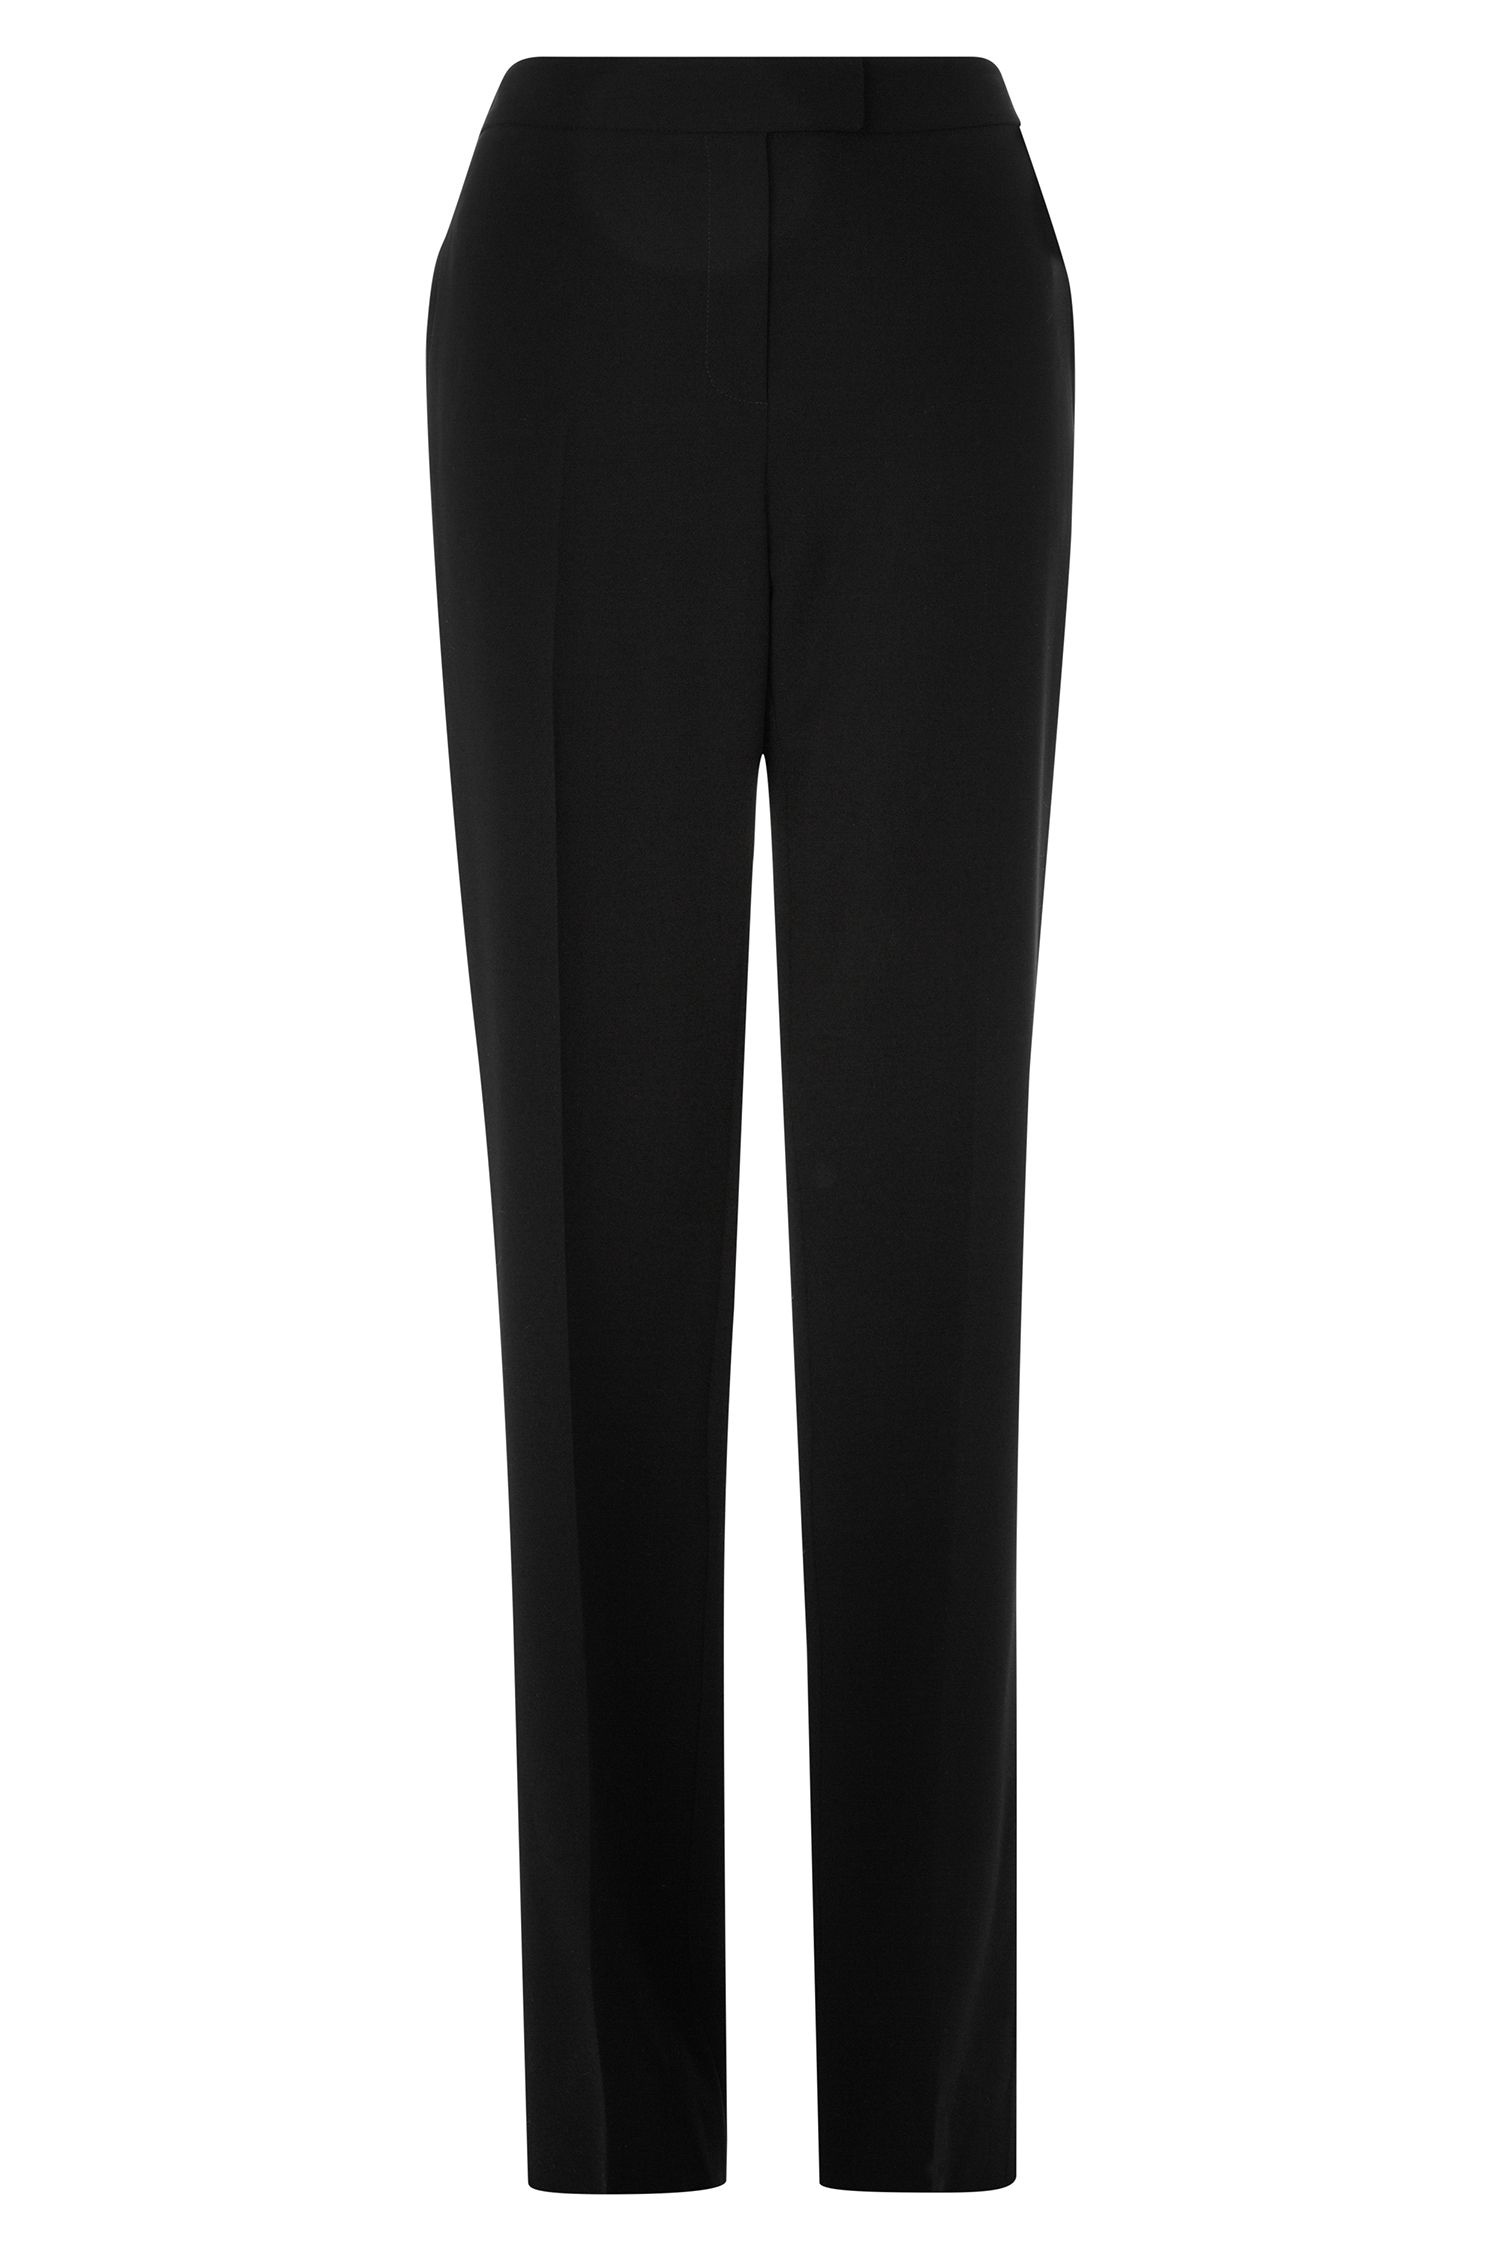 Damsel in a Dress Rendezvous Trouser, Black